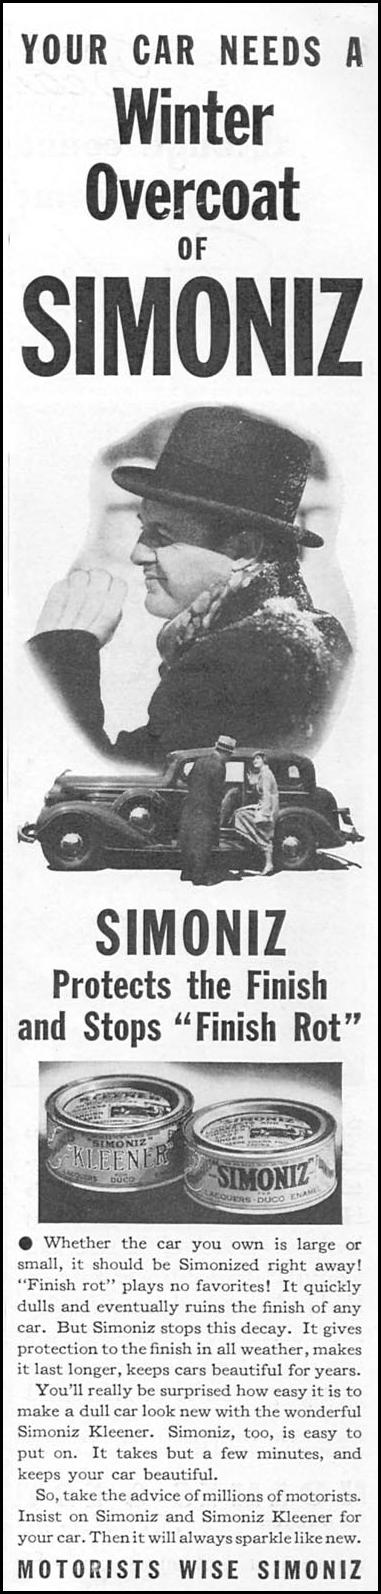 SIMONIZ CAR WAX GOOD HOUSEKEEPING 12/01/1934 p. 103